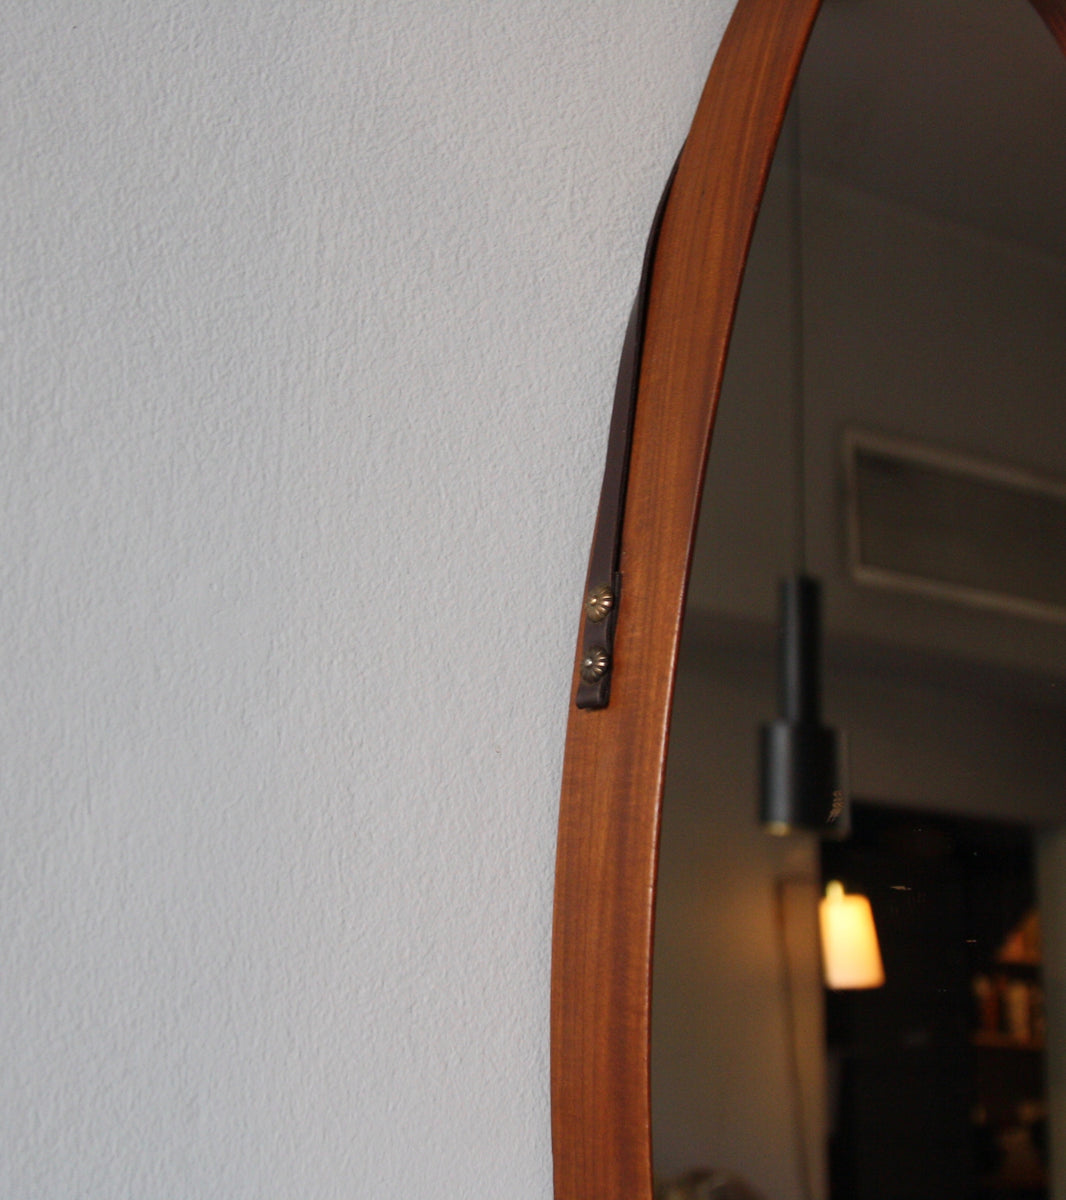 Teak Mid 20th Century Oval Mirror with Leather Strap Denmark